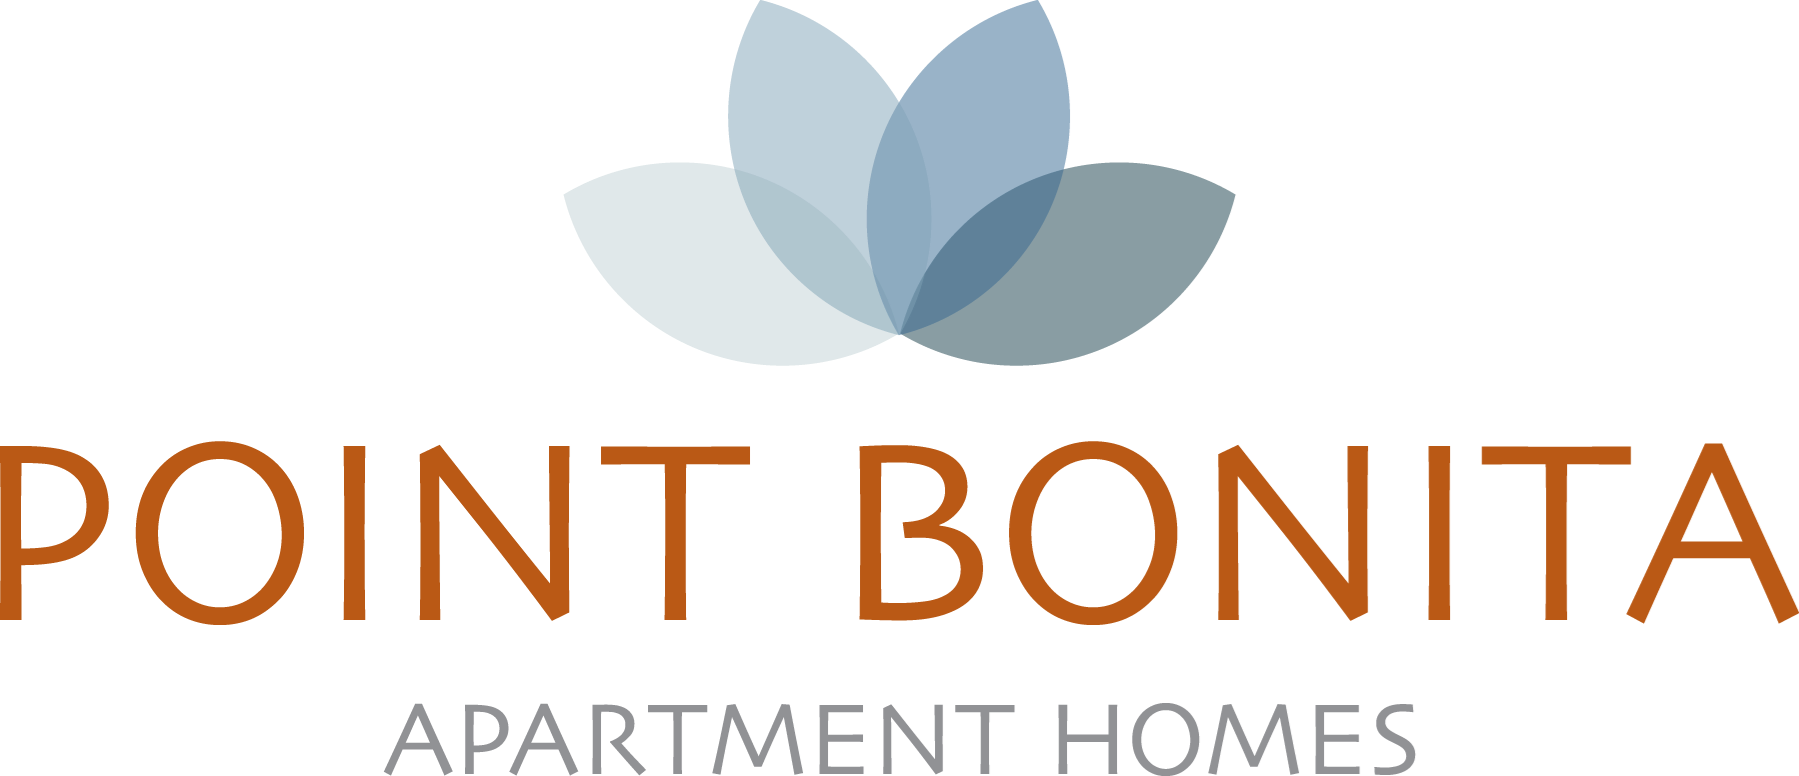 Point Bonita Apartment Homes Logo